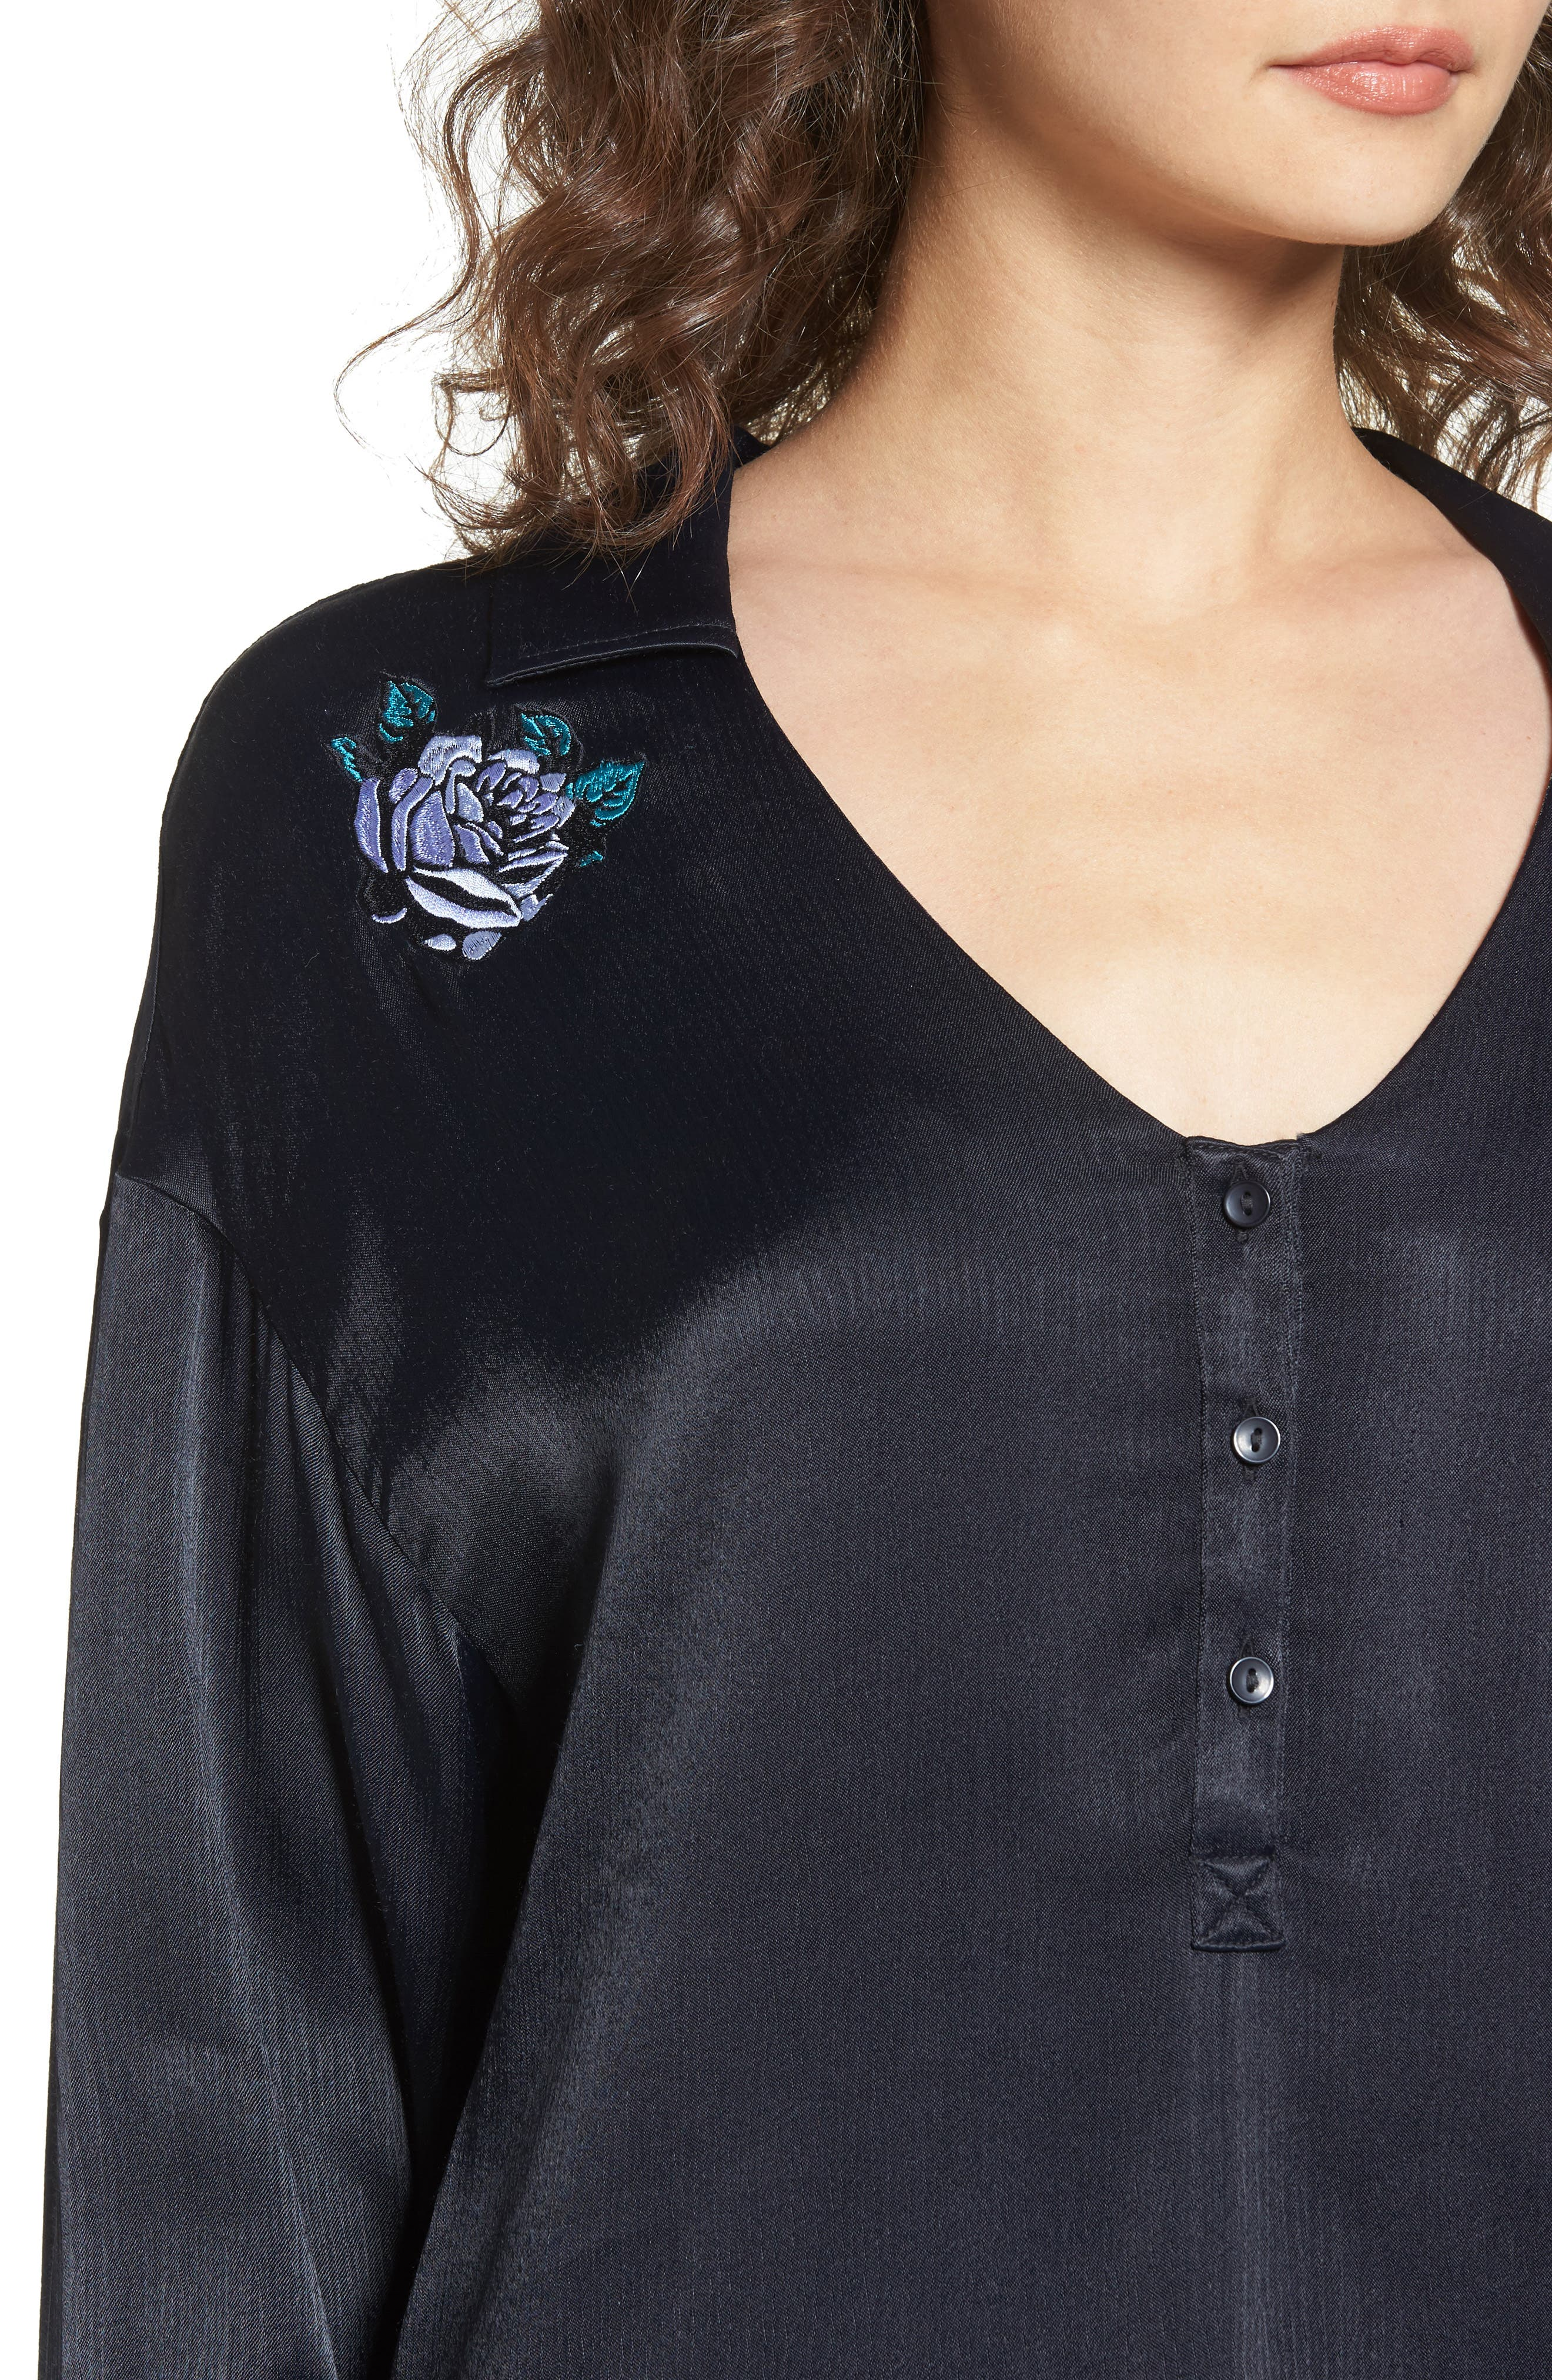 Naomi Embroidered Blouse,                             Alternate thumbnail 4, color,                             001